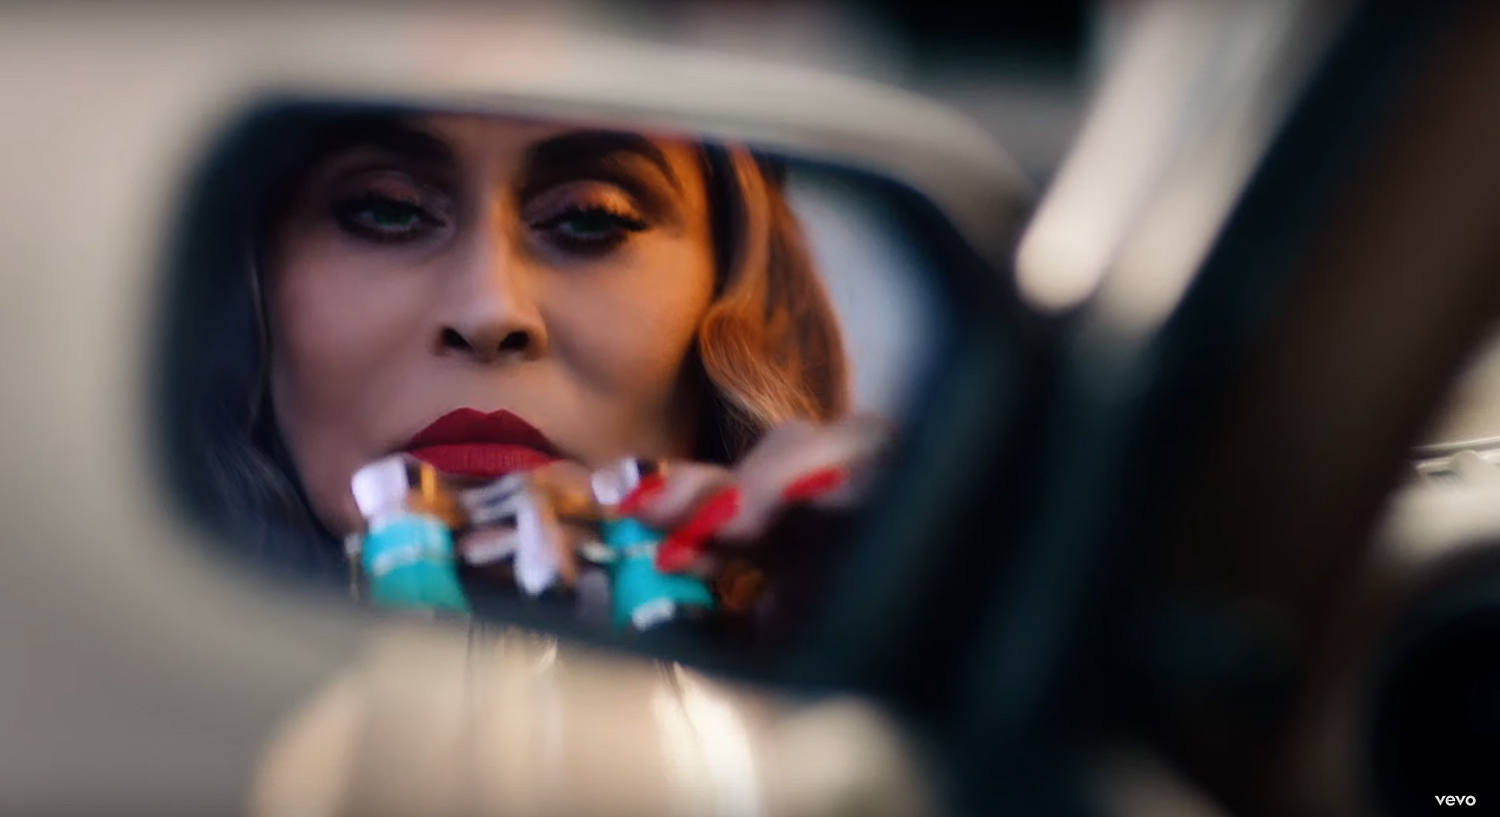 Beyoncé's Mom Tina Lawson Makes Cameo in Chloë Bailey's 'Have Mercy' Video